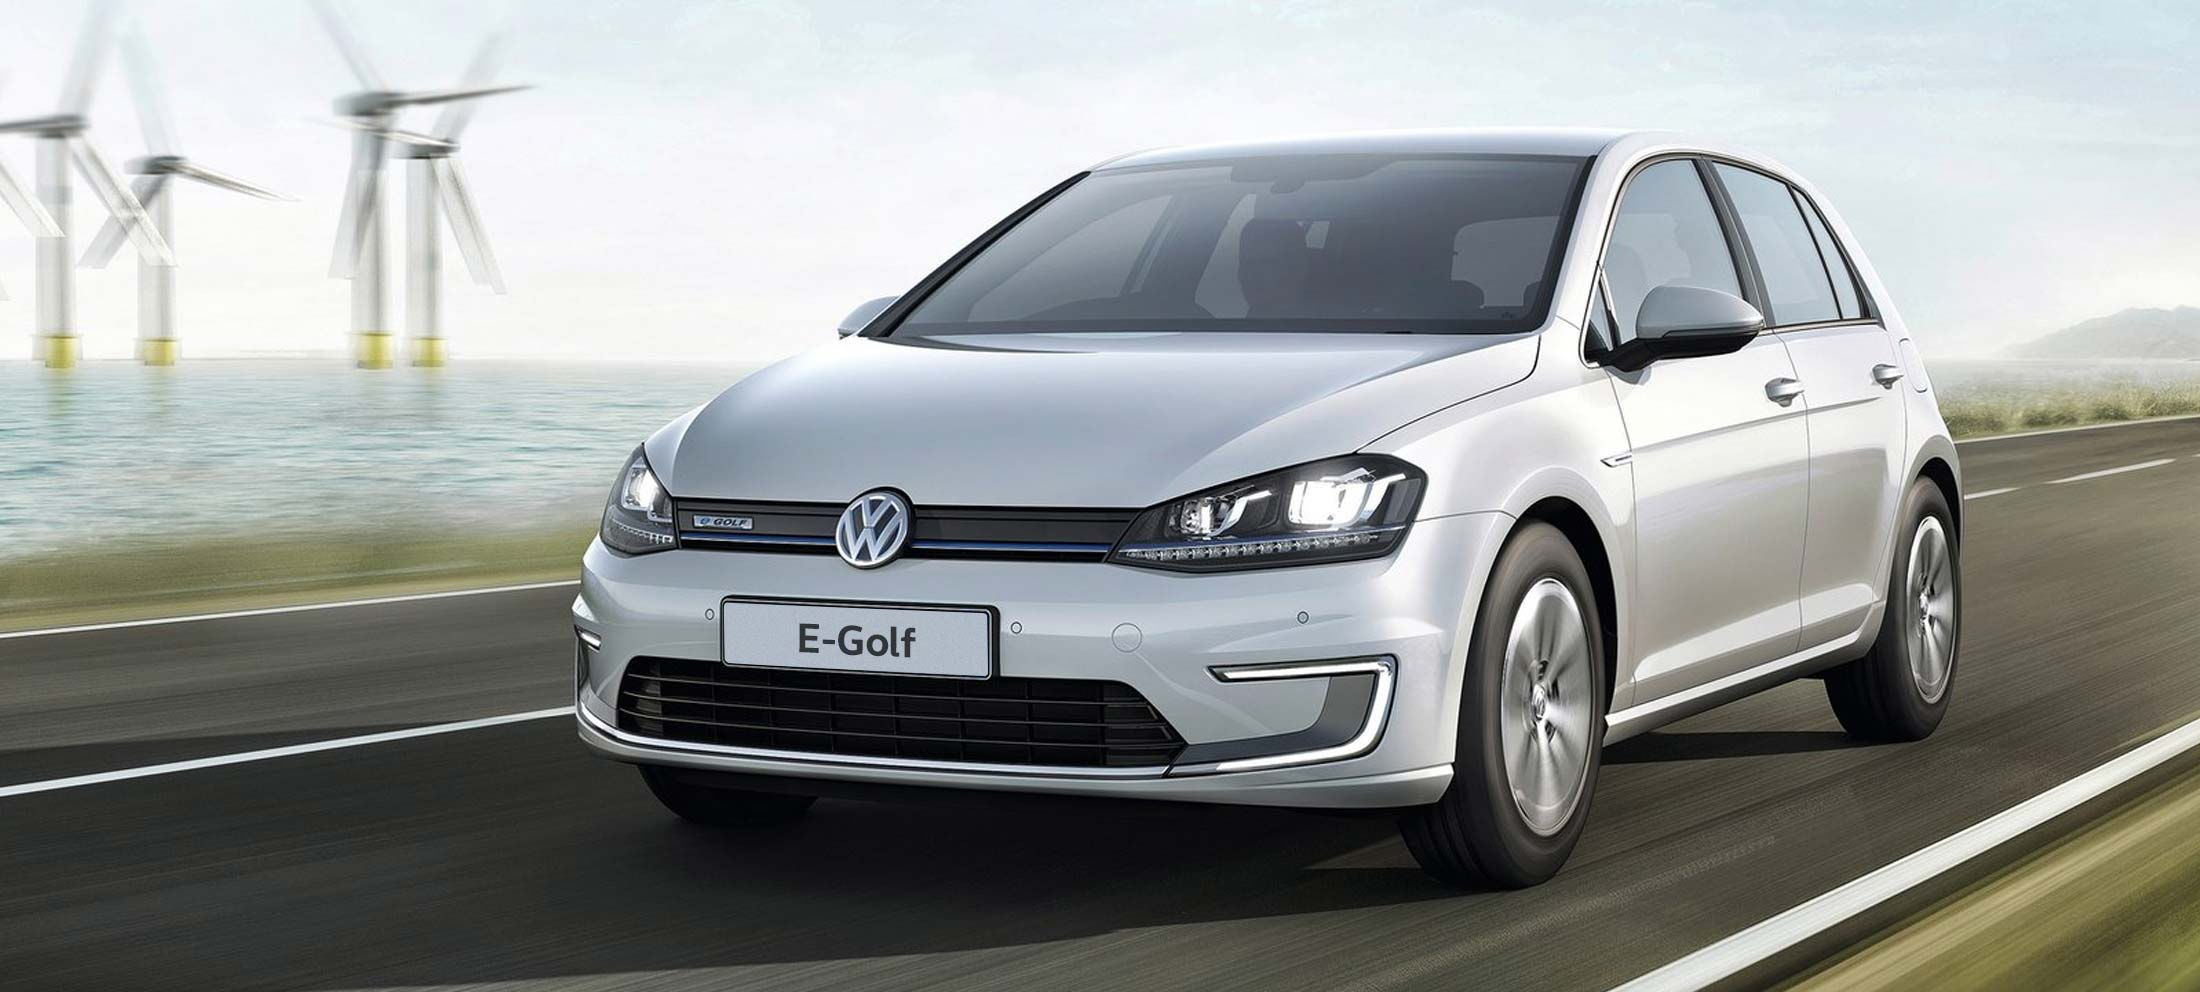 E-Golf Offer Slider 1